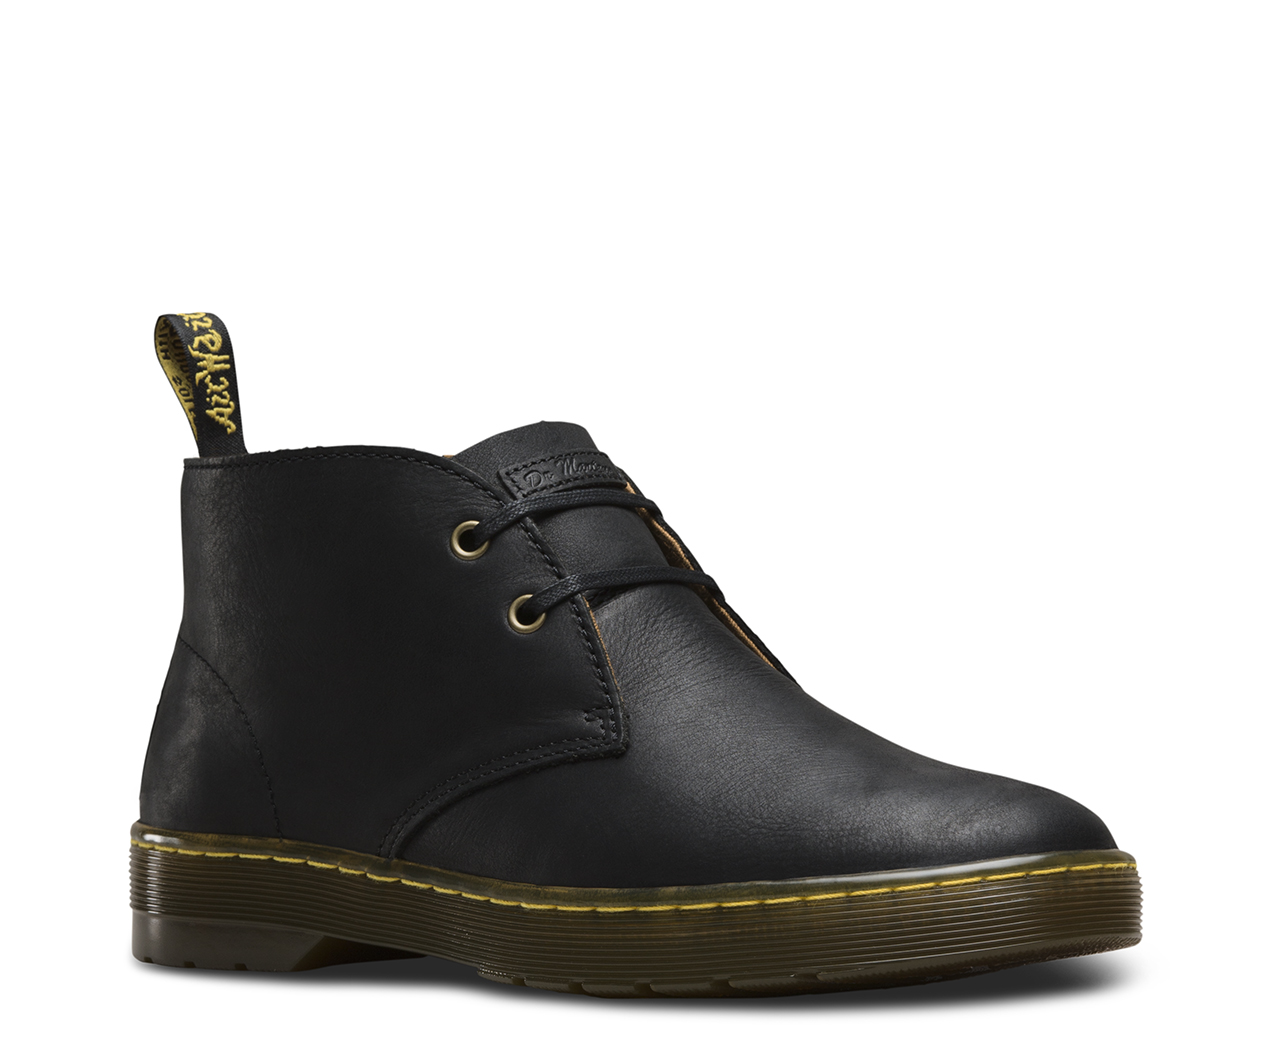 Cabrillo Wyoming Aw18 Dr Martens Official Site